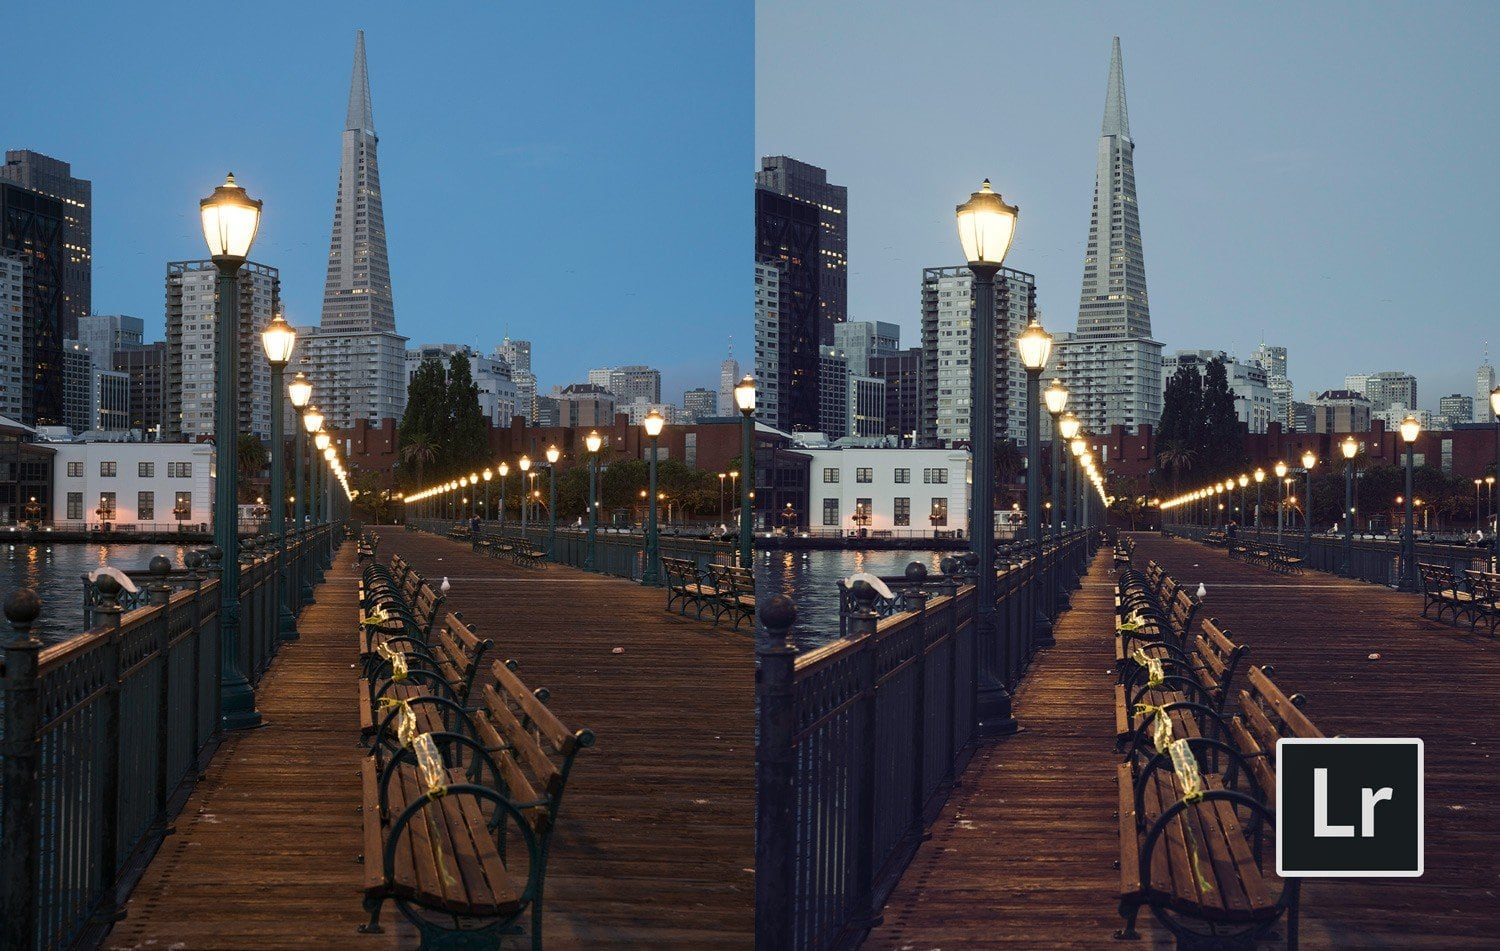 Free-Lightroom-Preset-Film-Emulation-Before-and-After-Presetpro.com